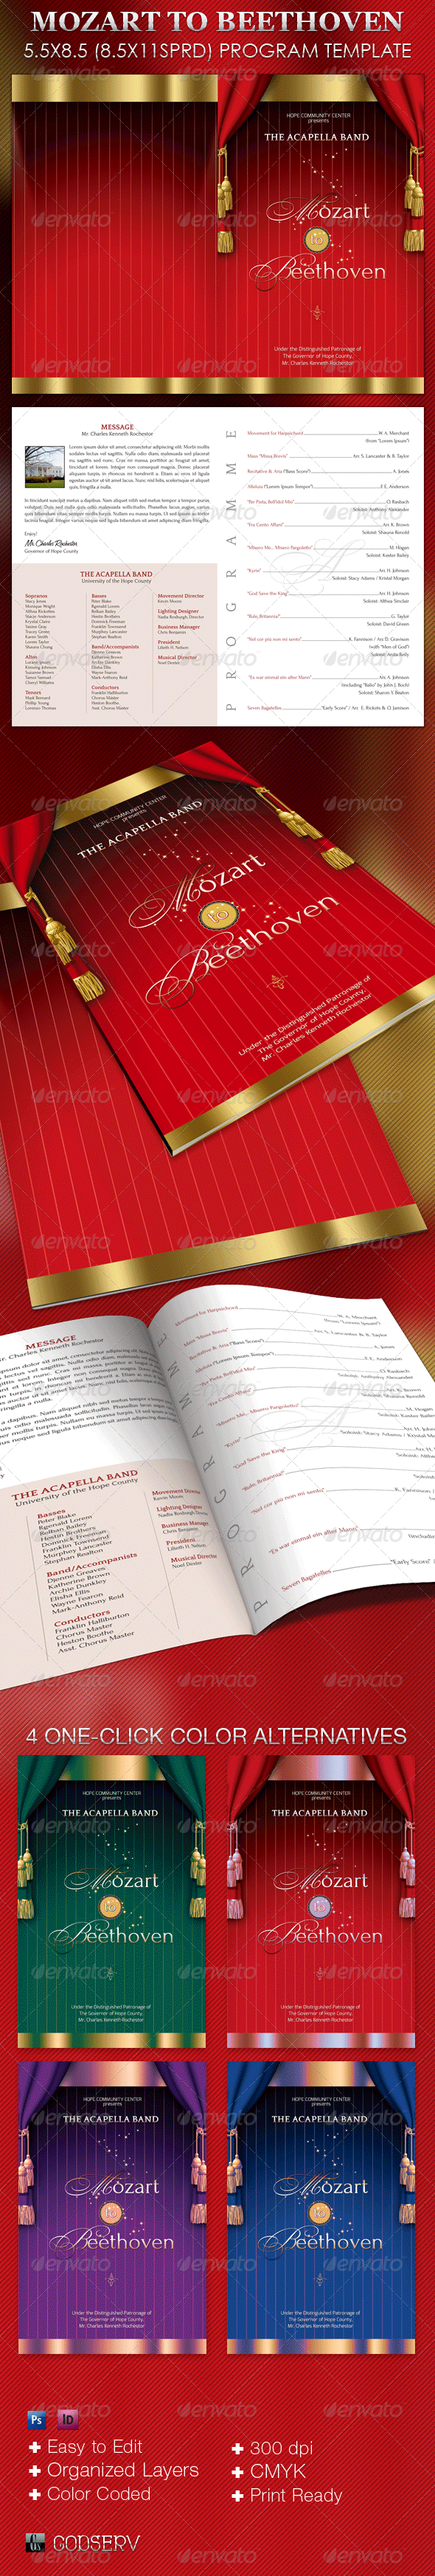 Mozart to Beethoven Program Template - Informational Brochures